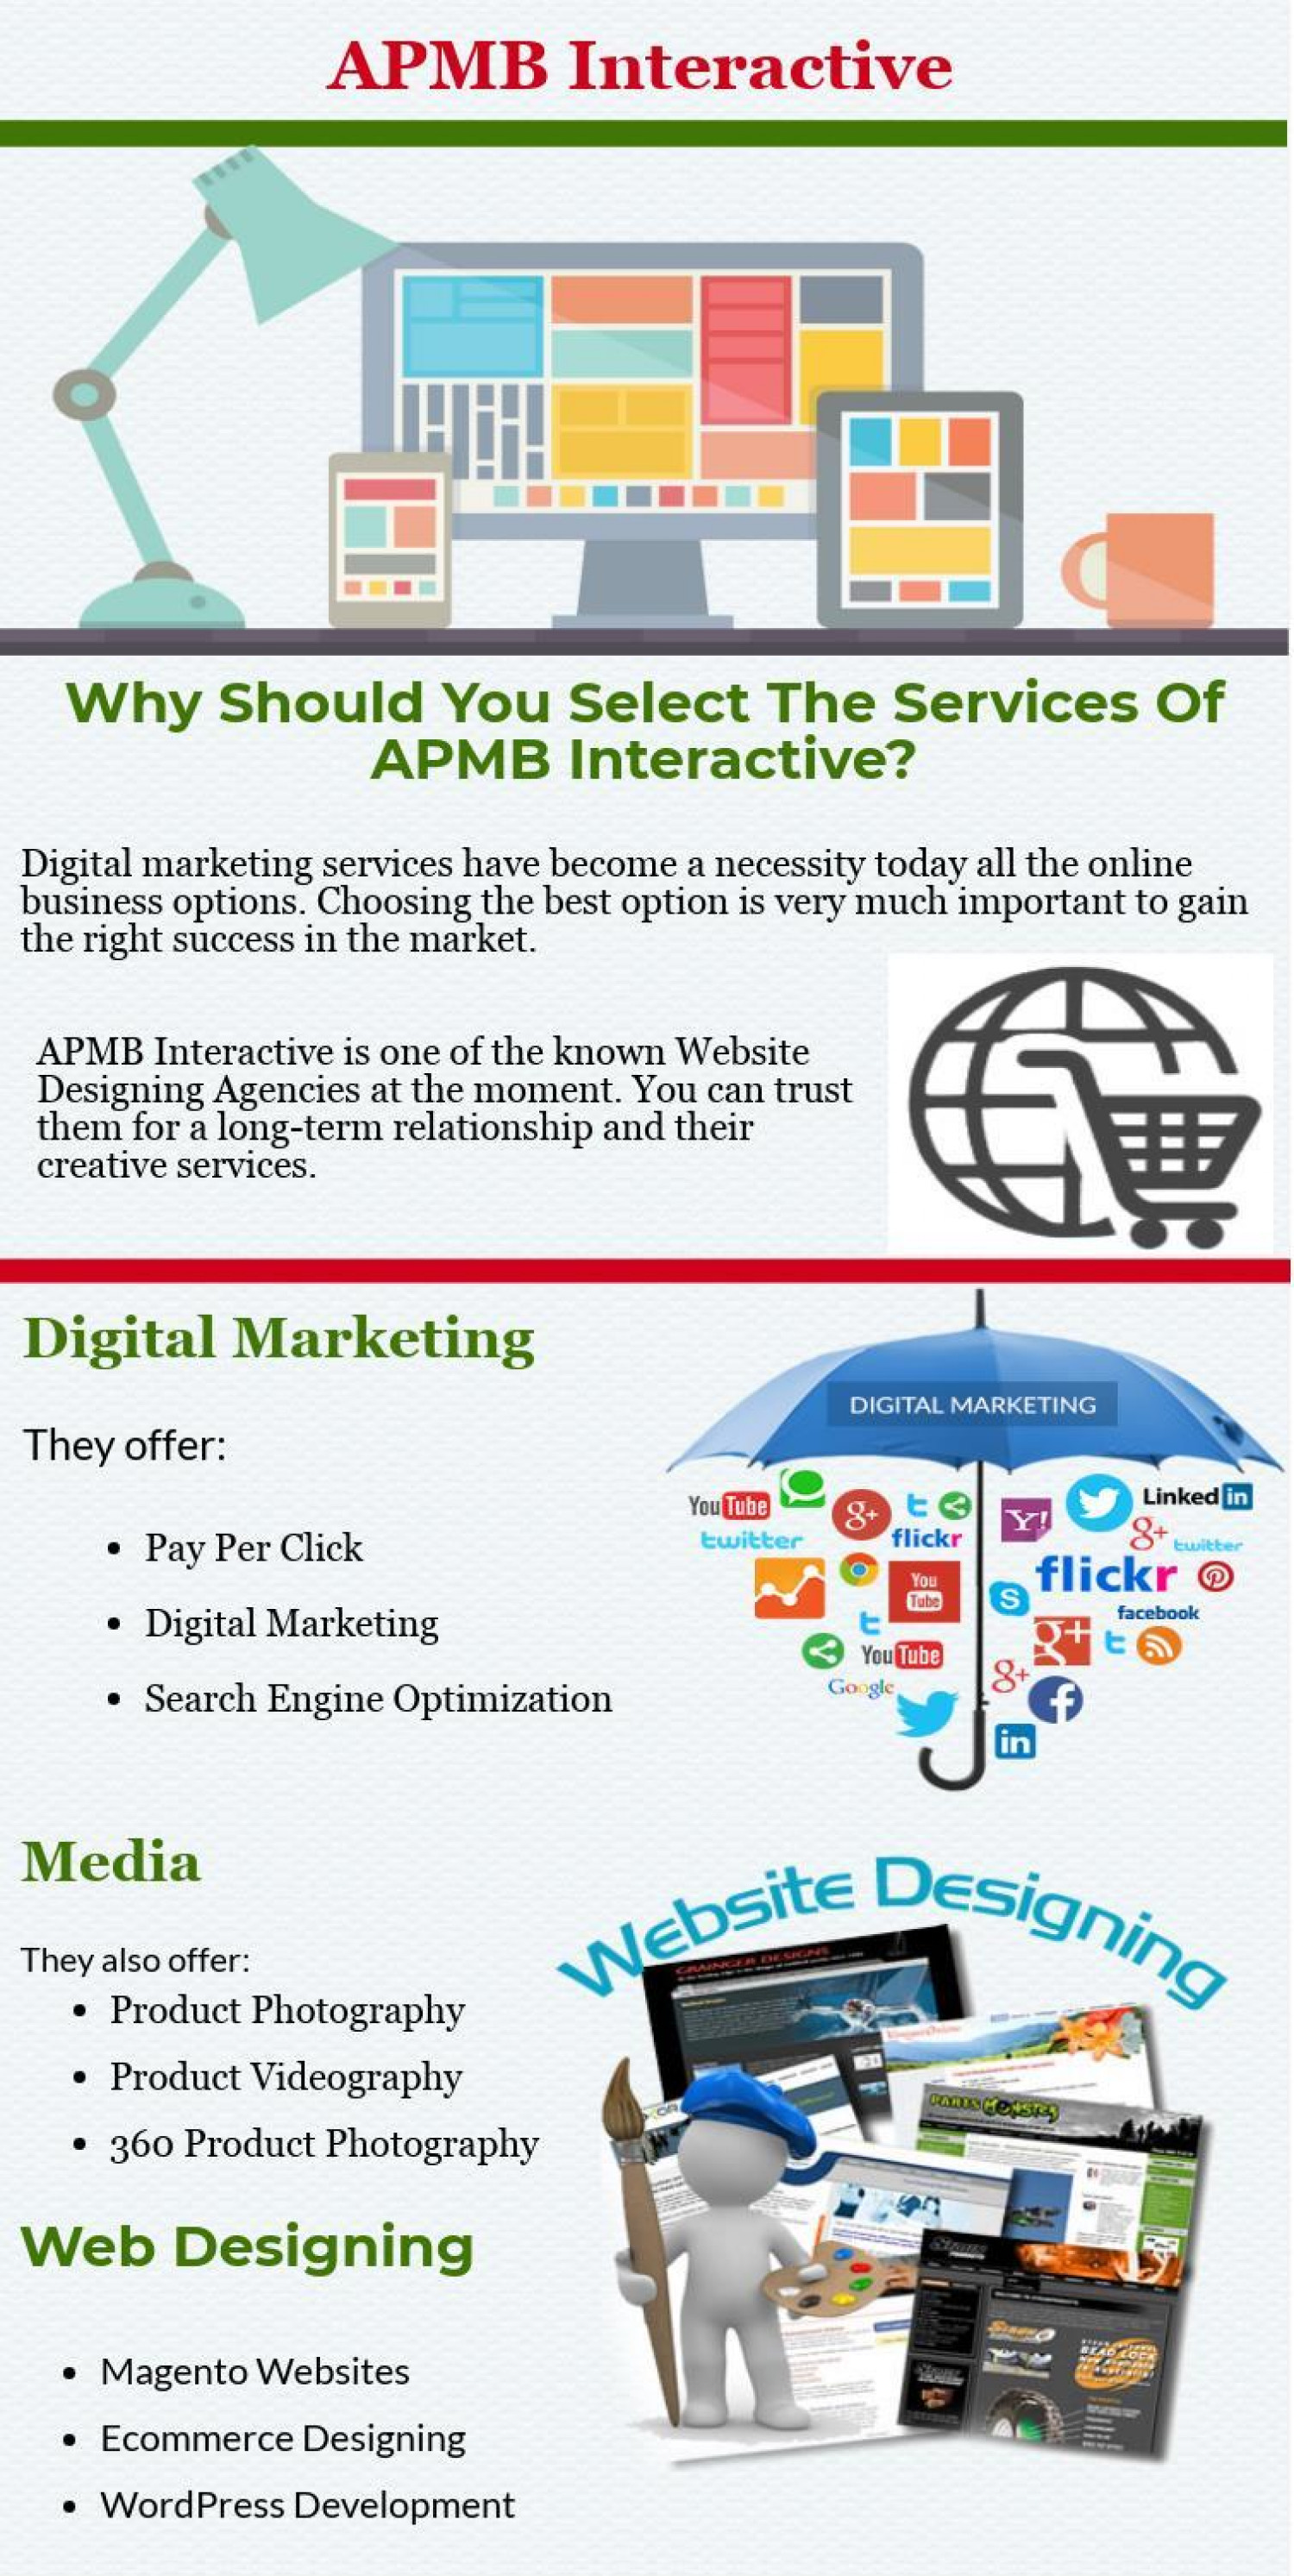 Why Should You Select The Services Of APMB Interactive? Infographic